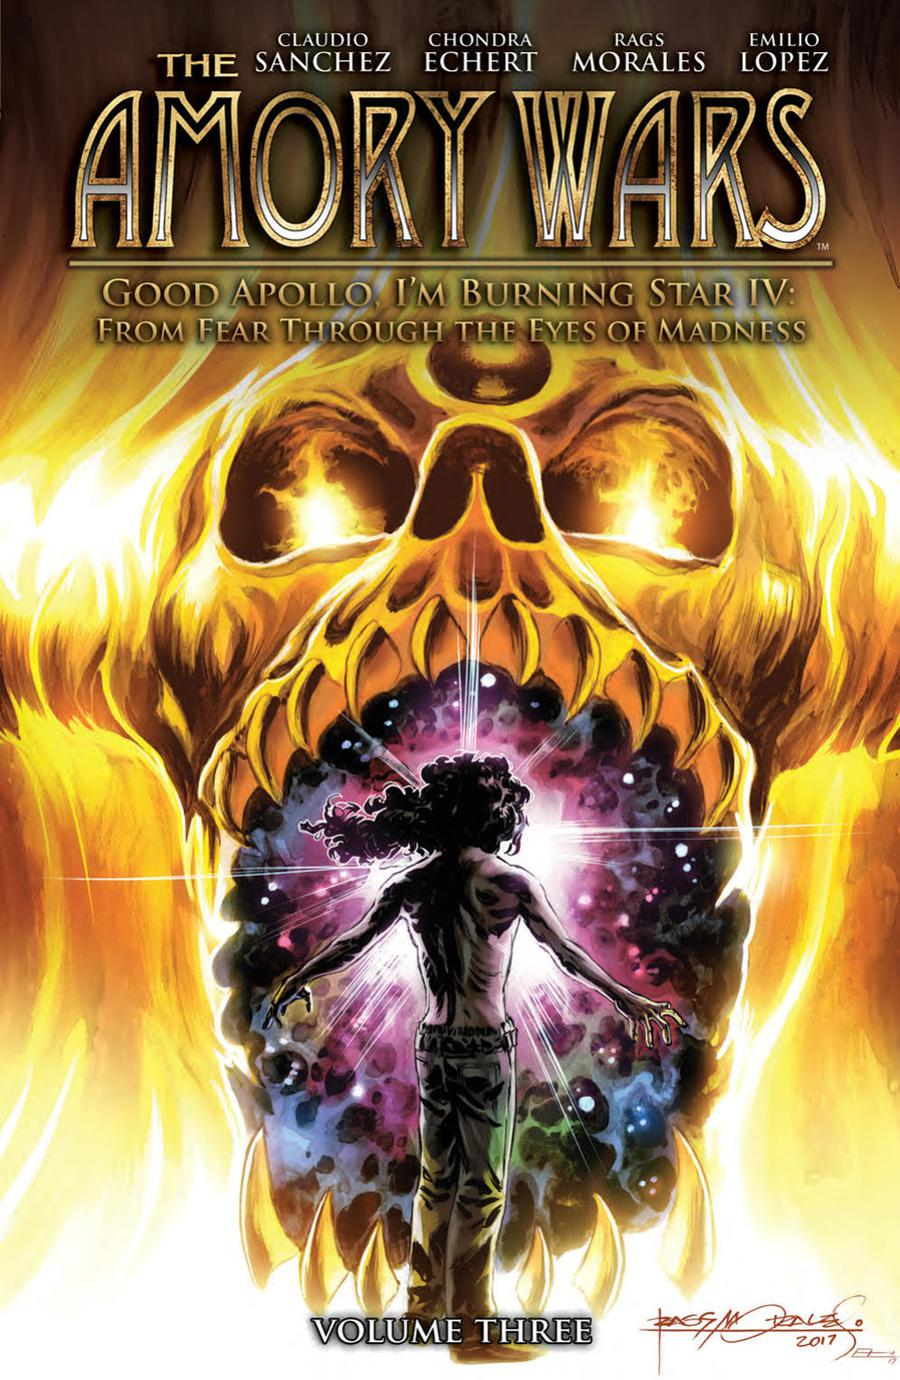 Amory Wars Good Apollo Im Burning Star IV Vol 3 From Fear Through The Eyes Of Madness TP